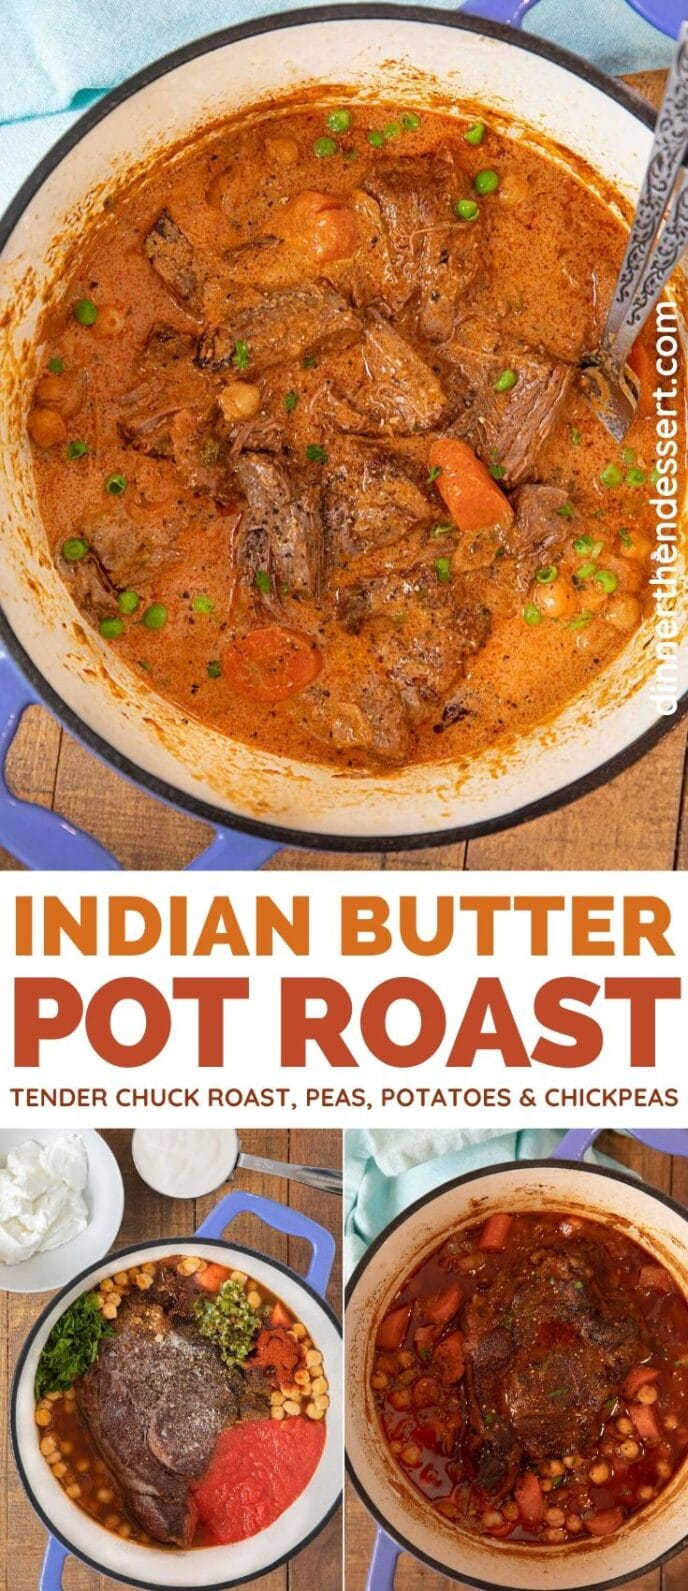 Indian Butter Pot Roast collage